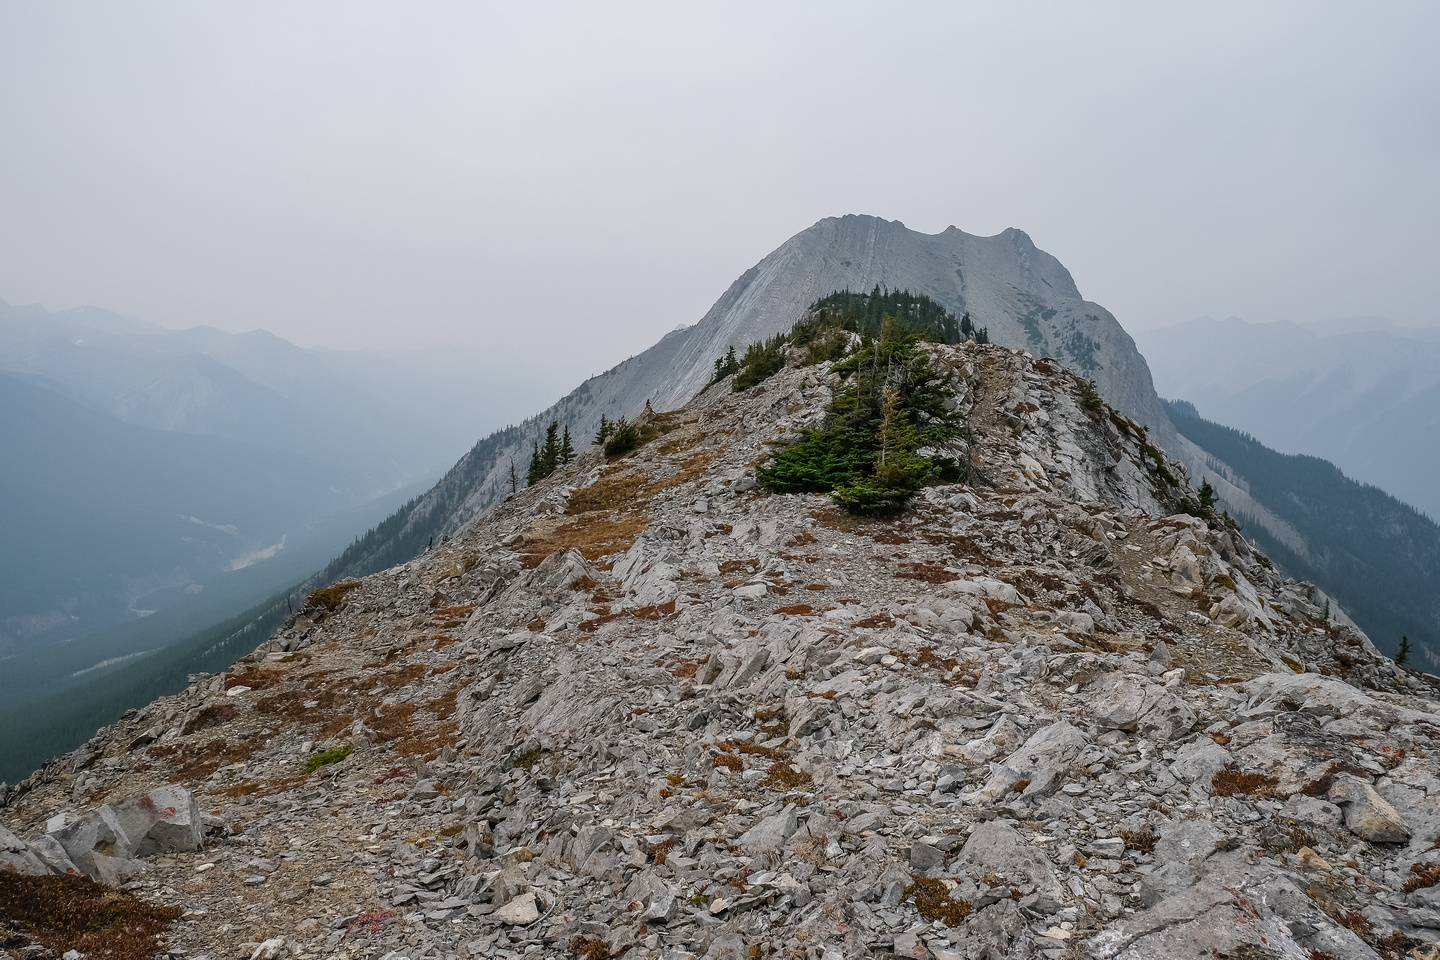 Hiking up the easy south ridge to the summit.